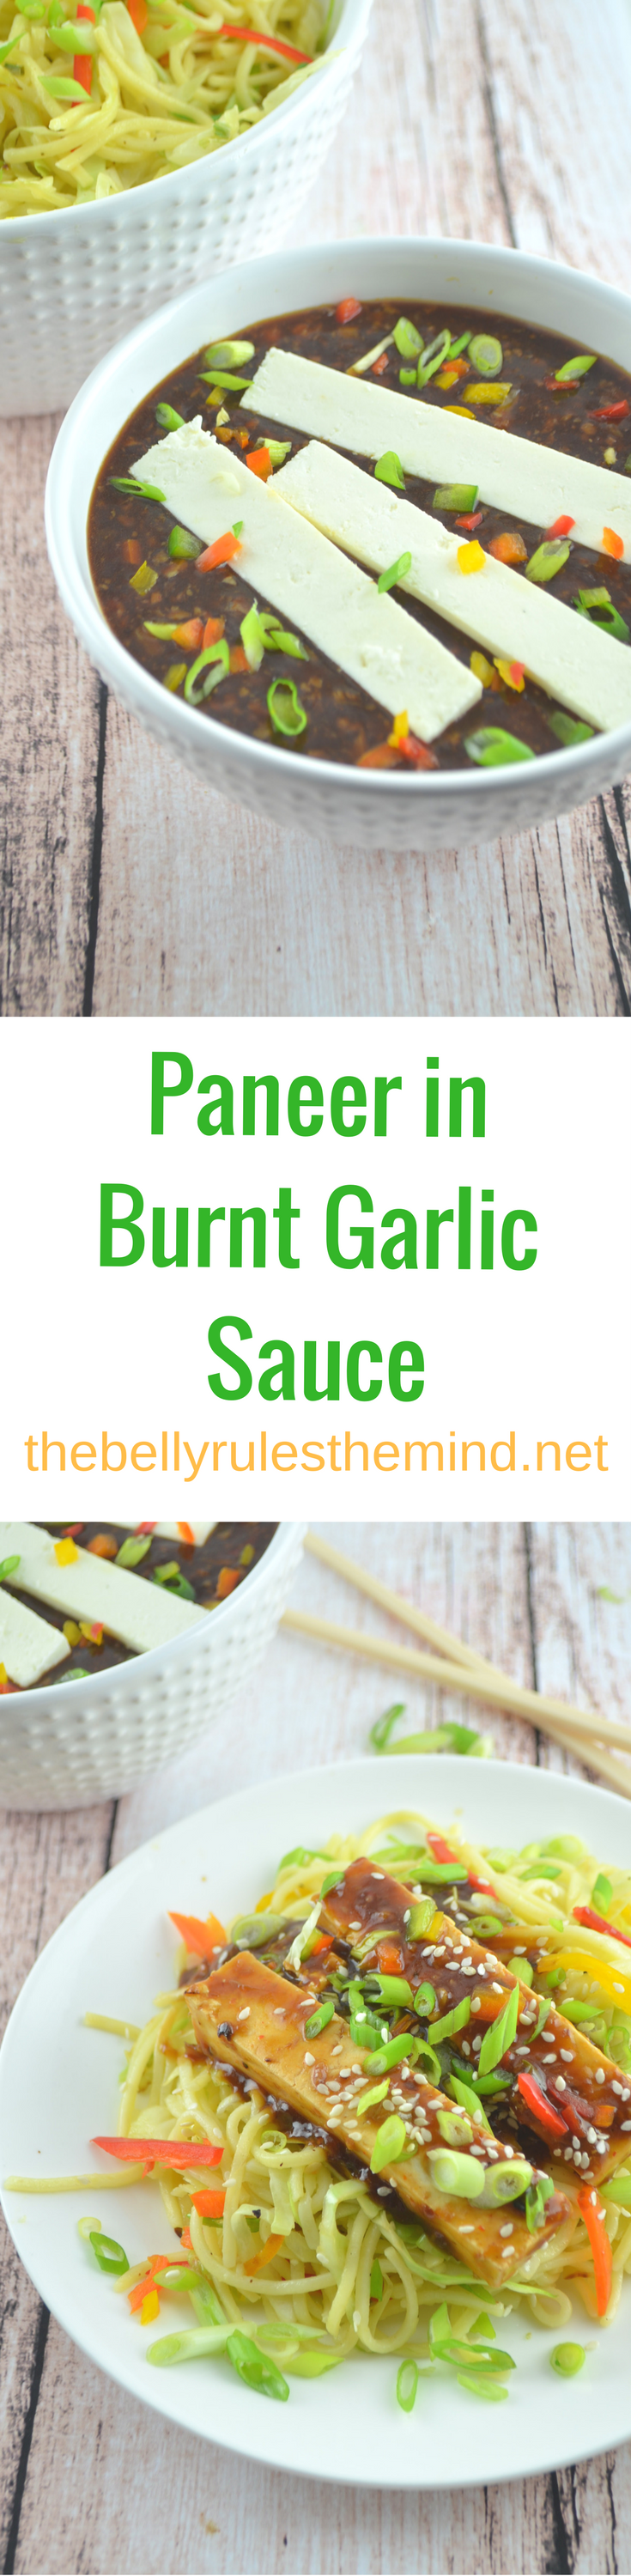 Paneer in Burnt garlic sauce (2)